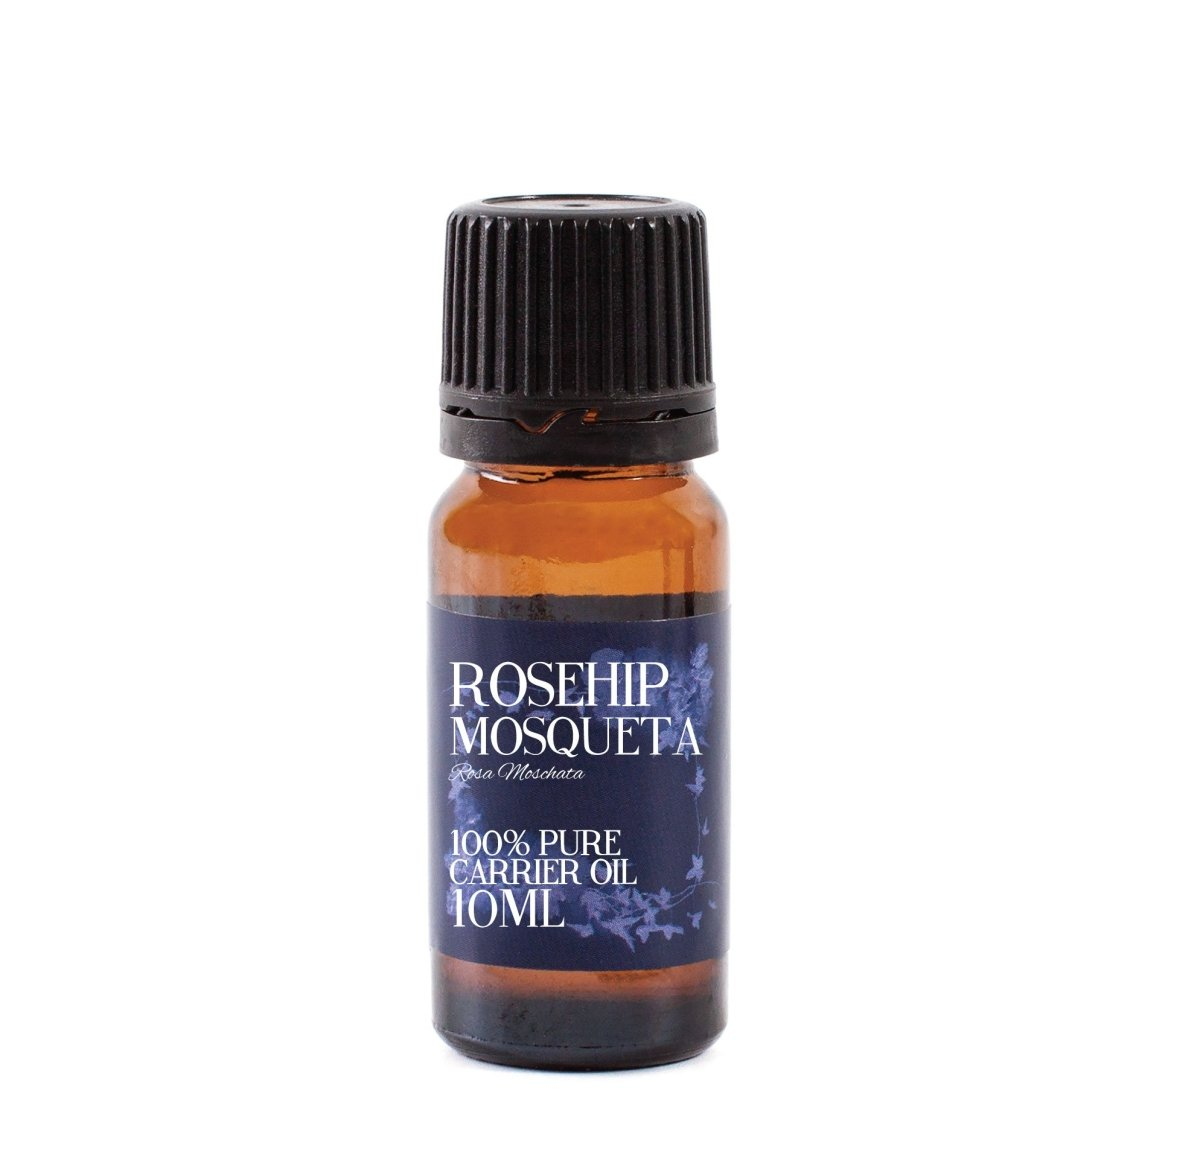 Rosehip Mosqueta Carrier Oil - Mystic Moments UK